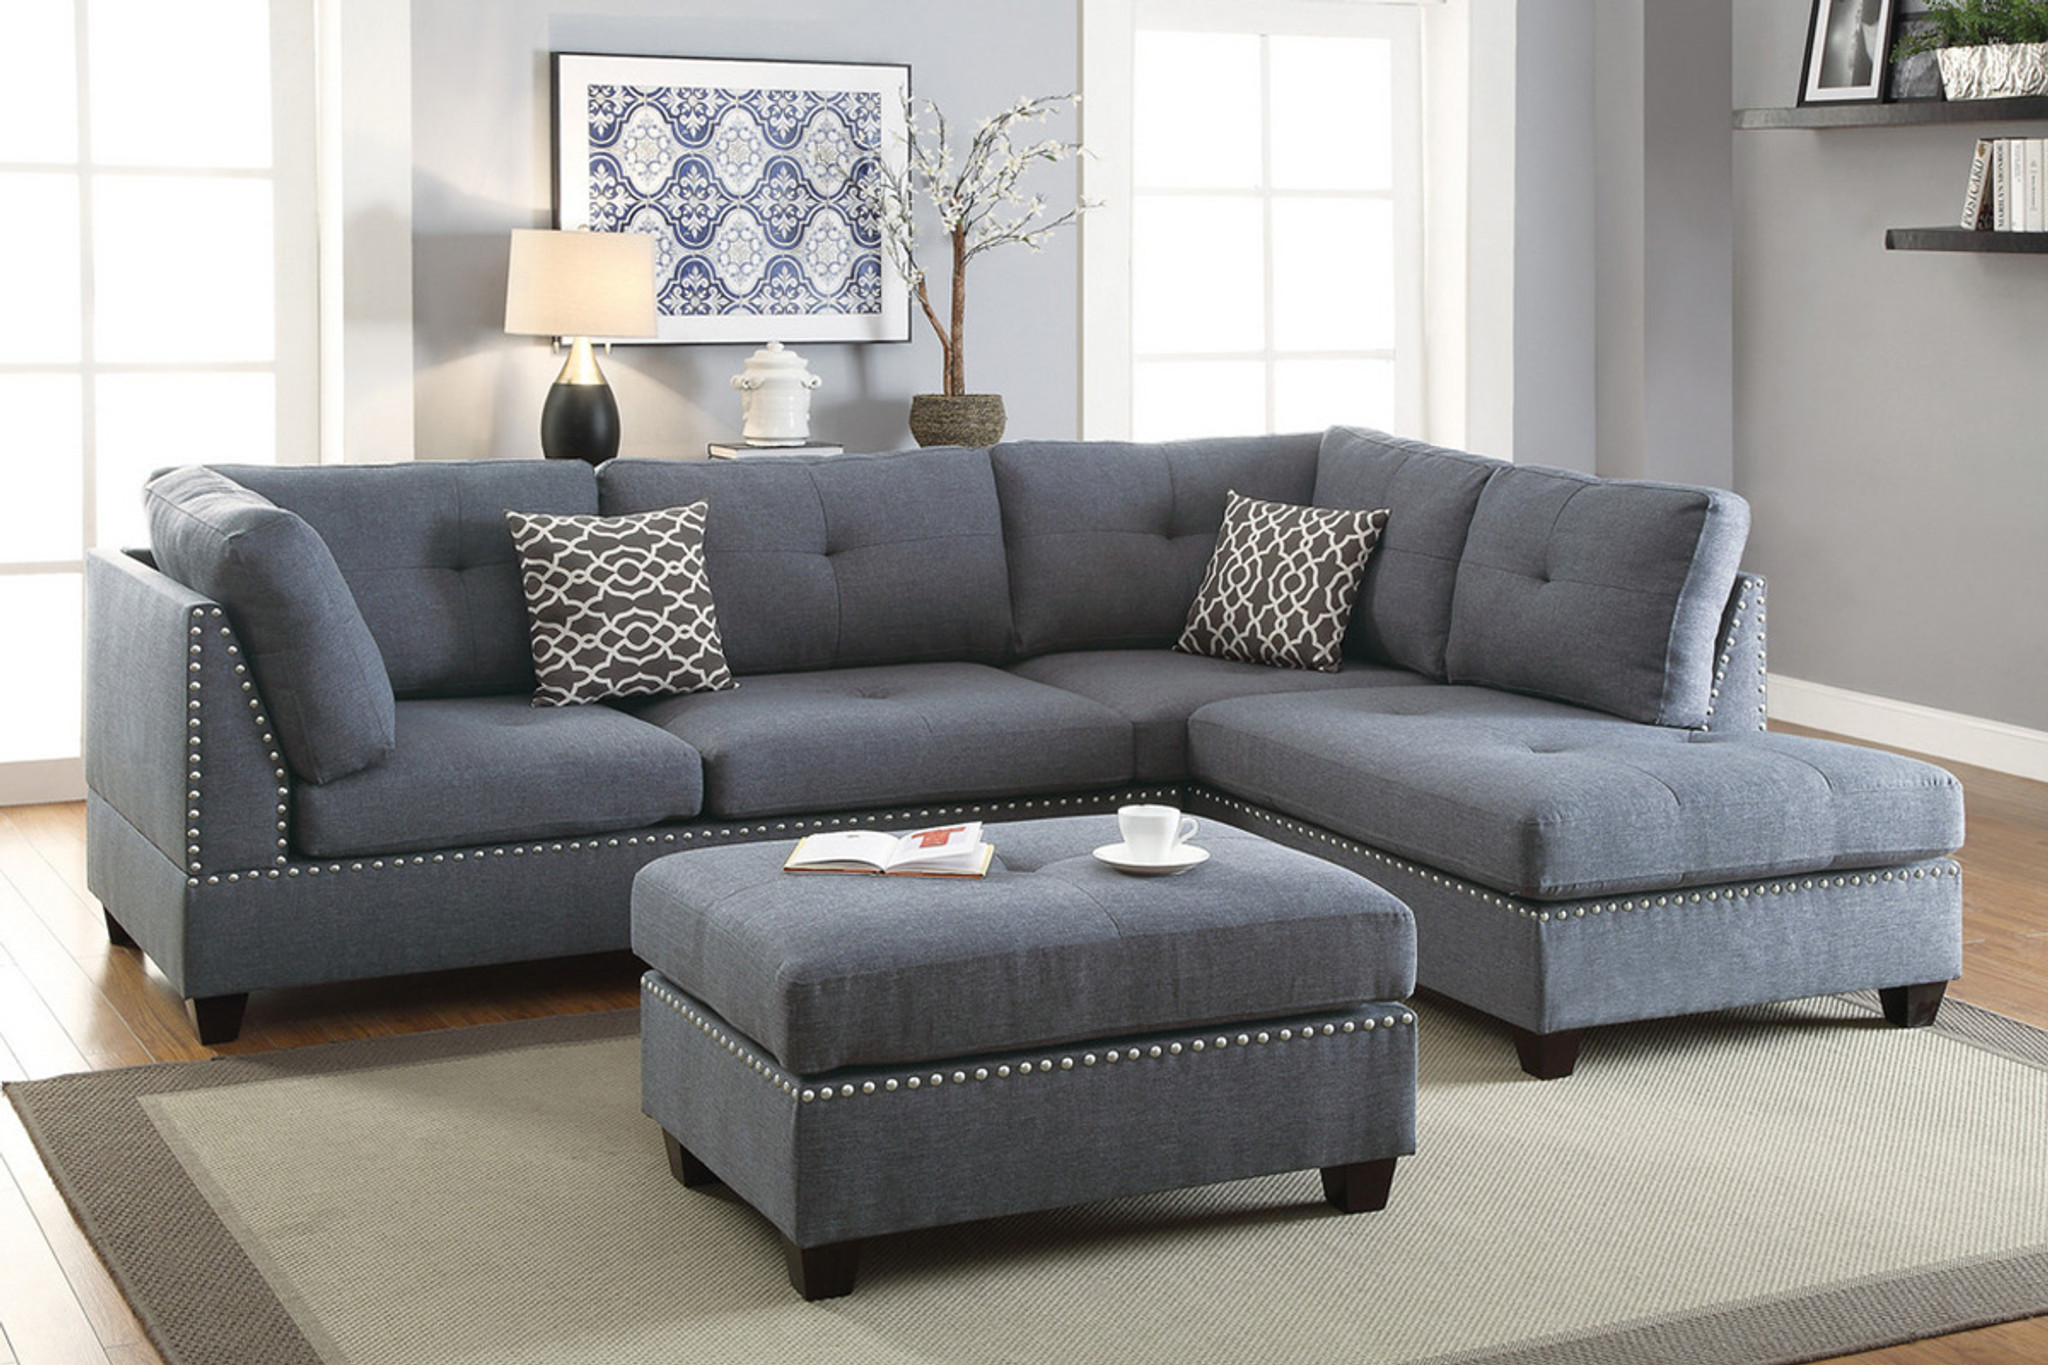 Awe Inspiring Laney Sectional With Ottoman In Blue Grey Uwap Interior Chair Design Uwaporg